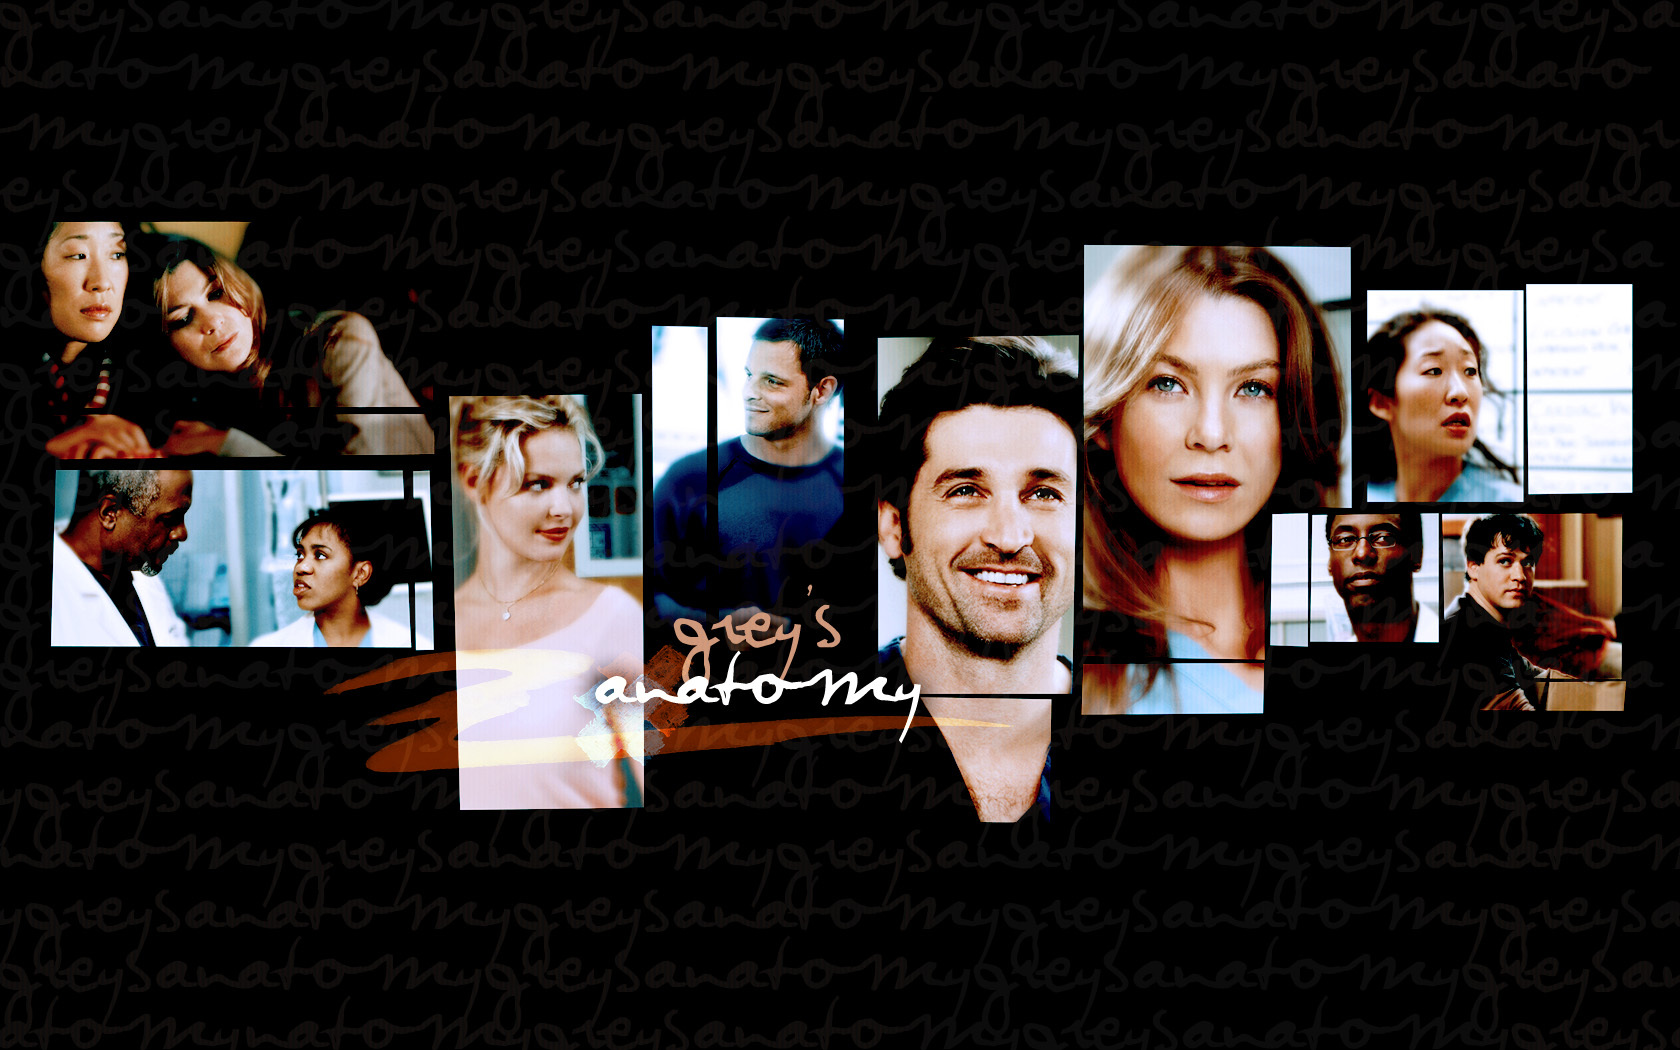 grey 39 s anatomy images grey 39 s hd wallpaper and background